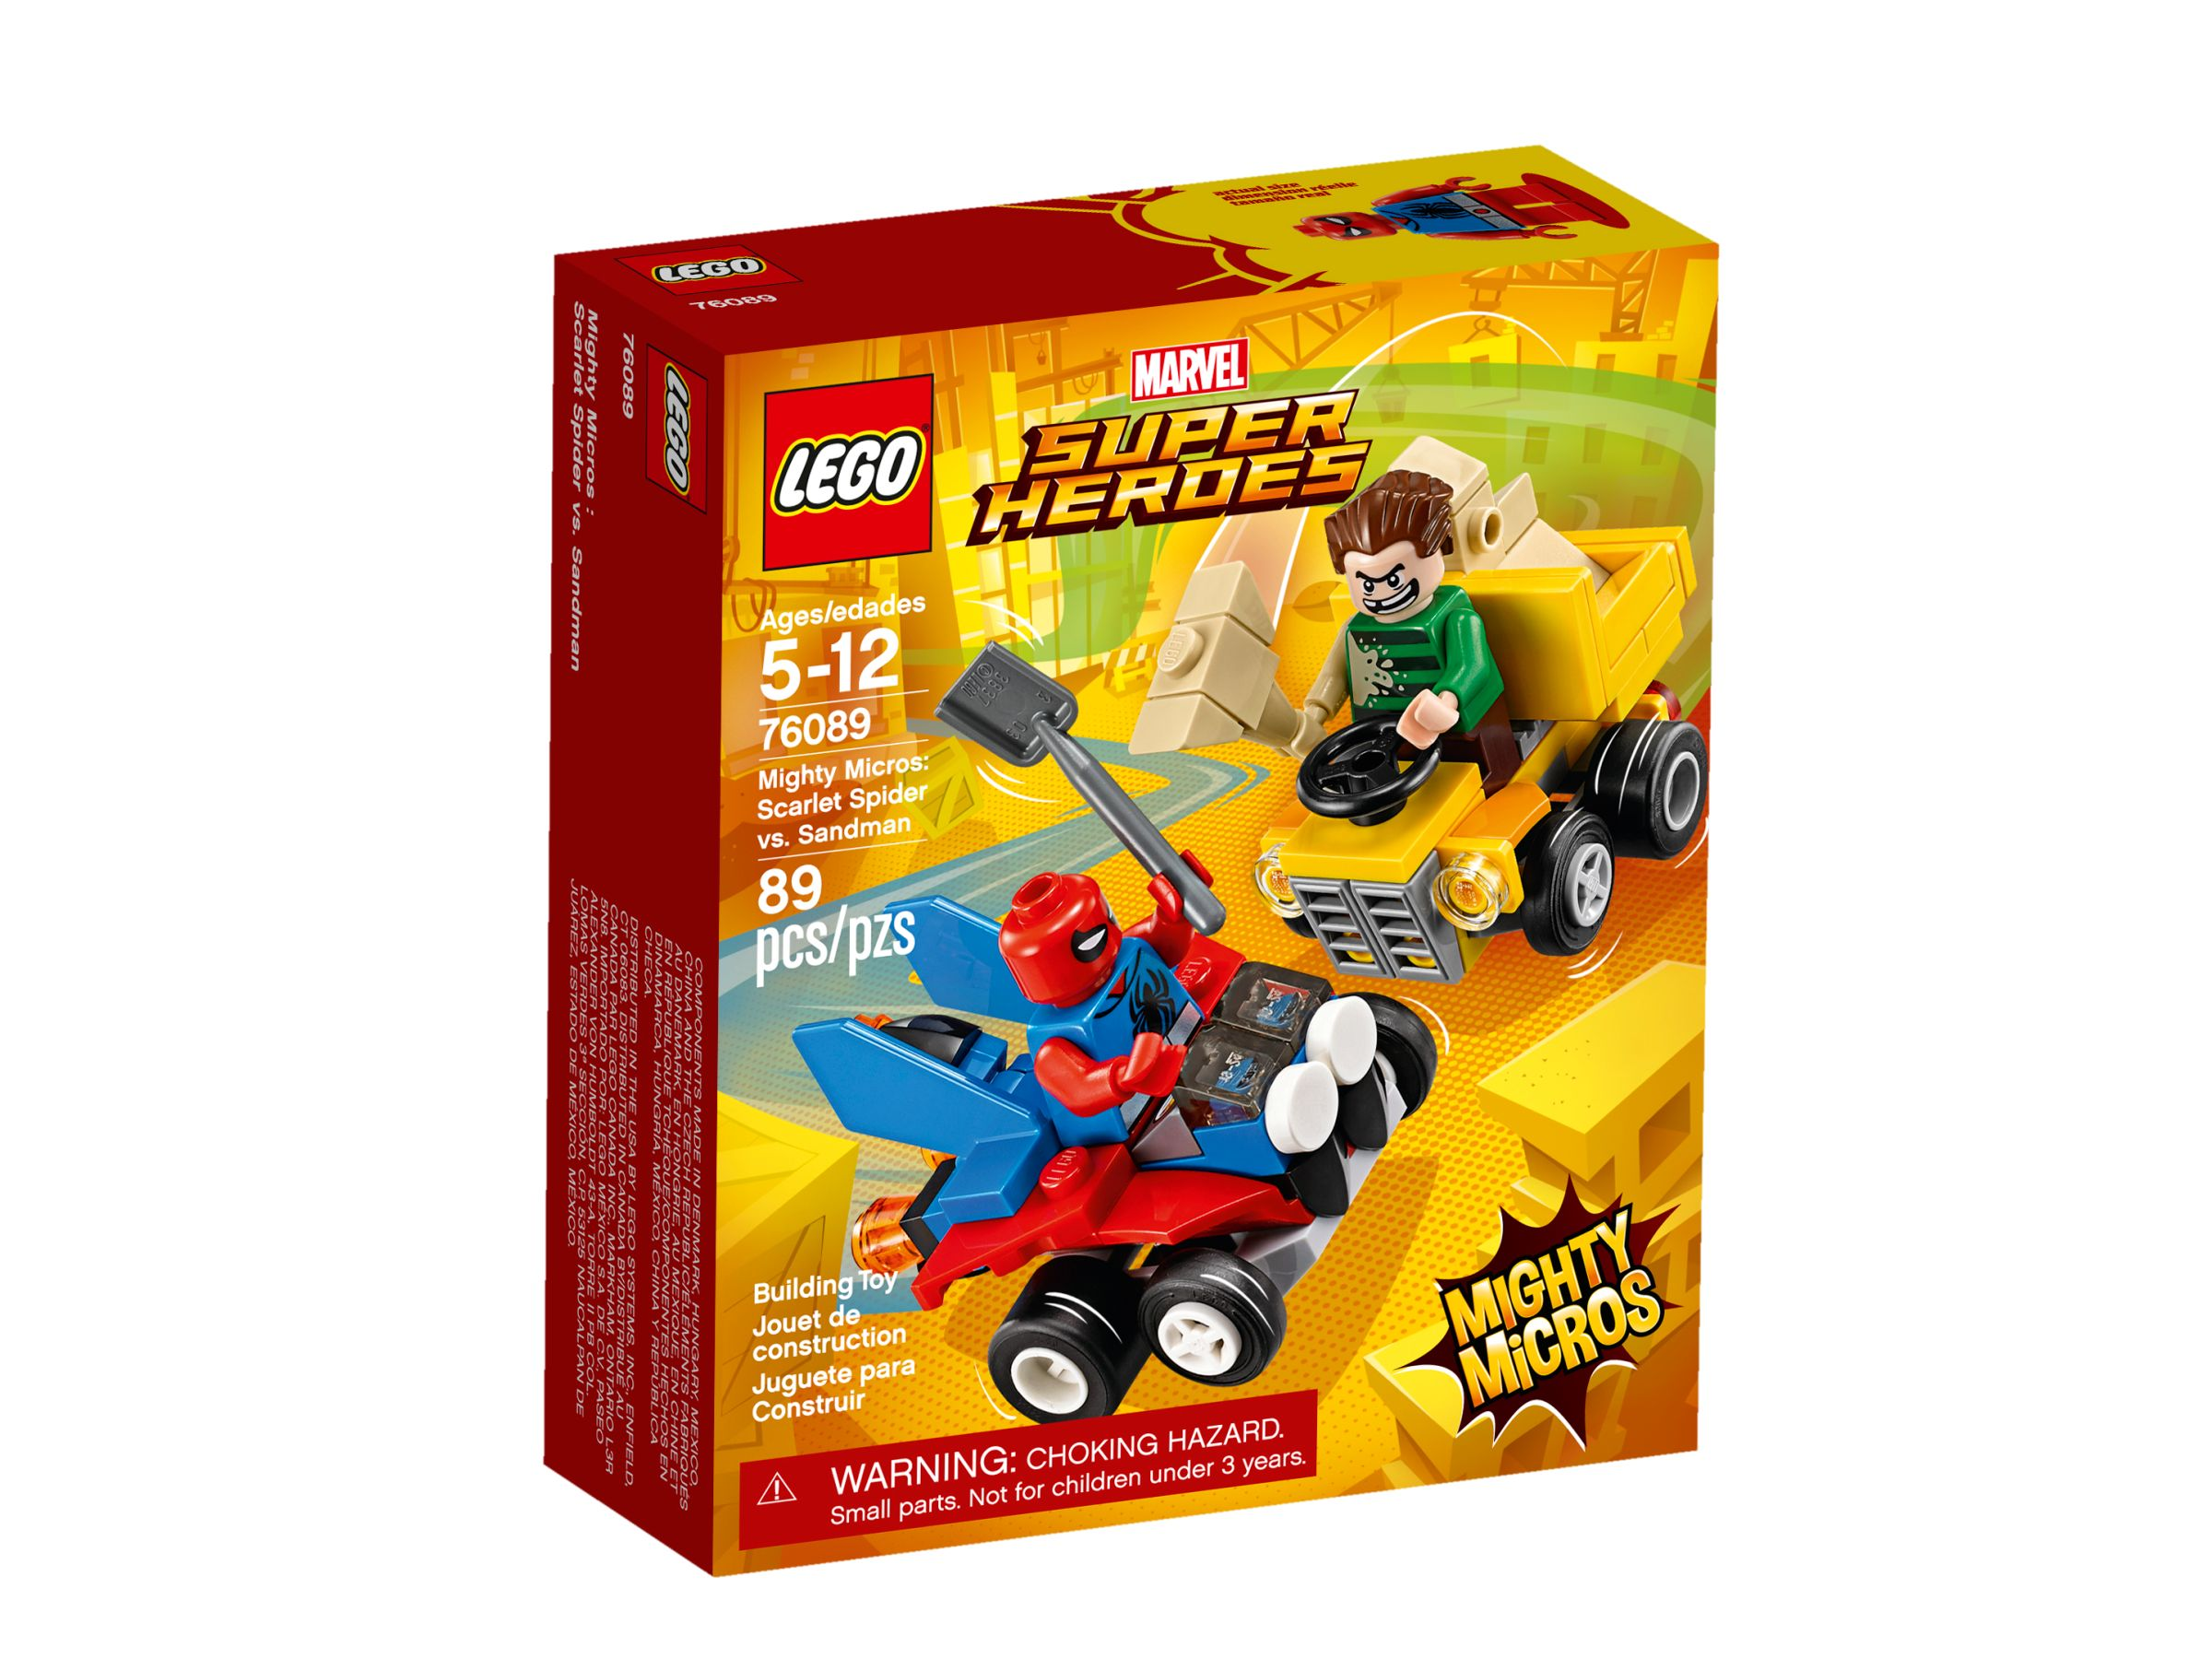 LEGO Super Heroes 76089 Mighty Micros: Spider-Man vs. Sandman LEGO_76089_alt1.jpg